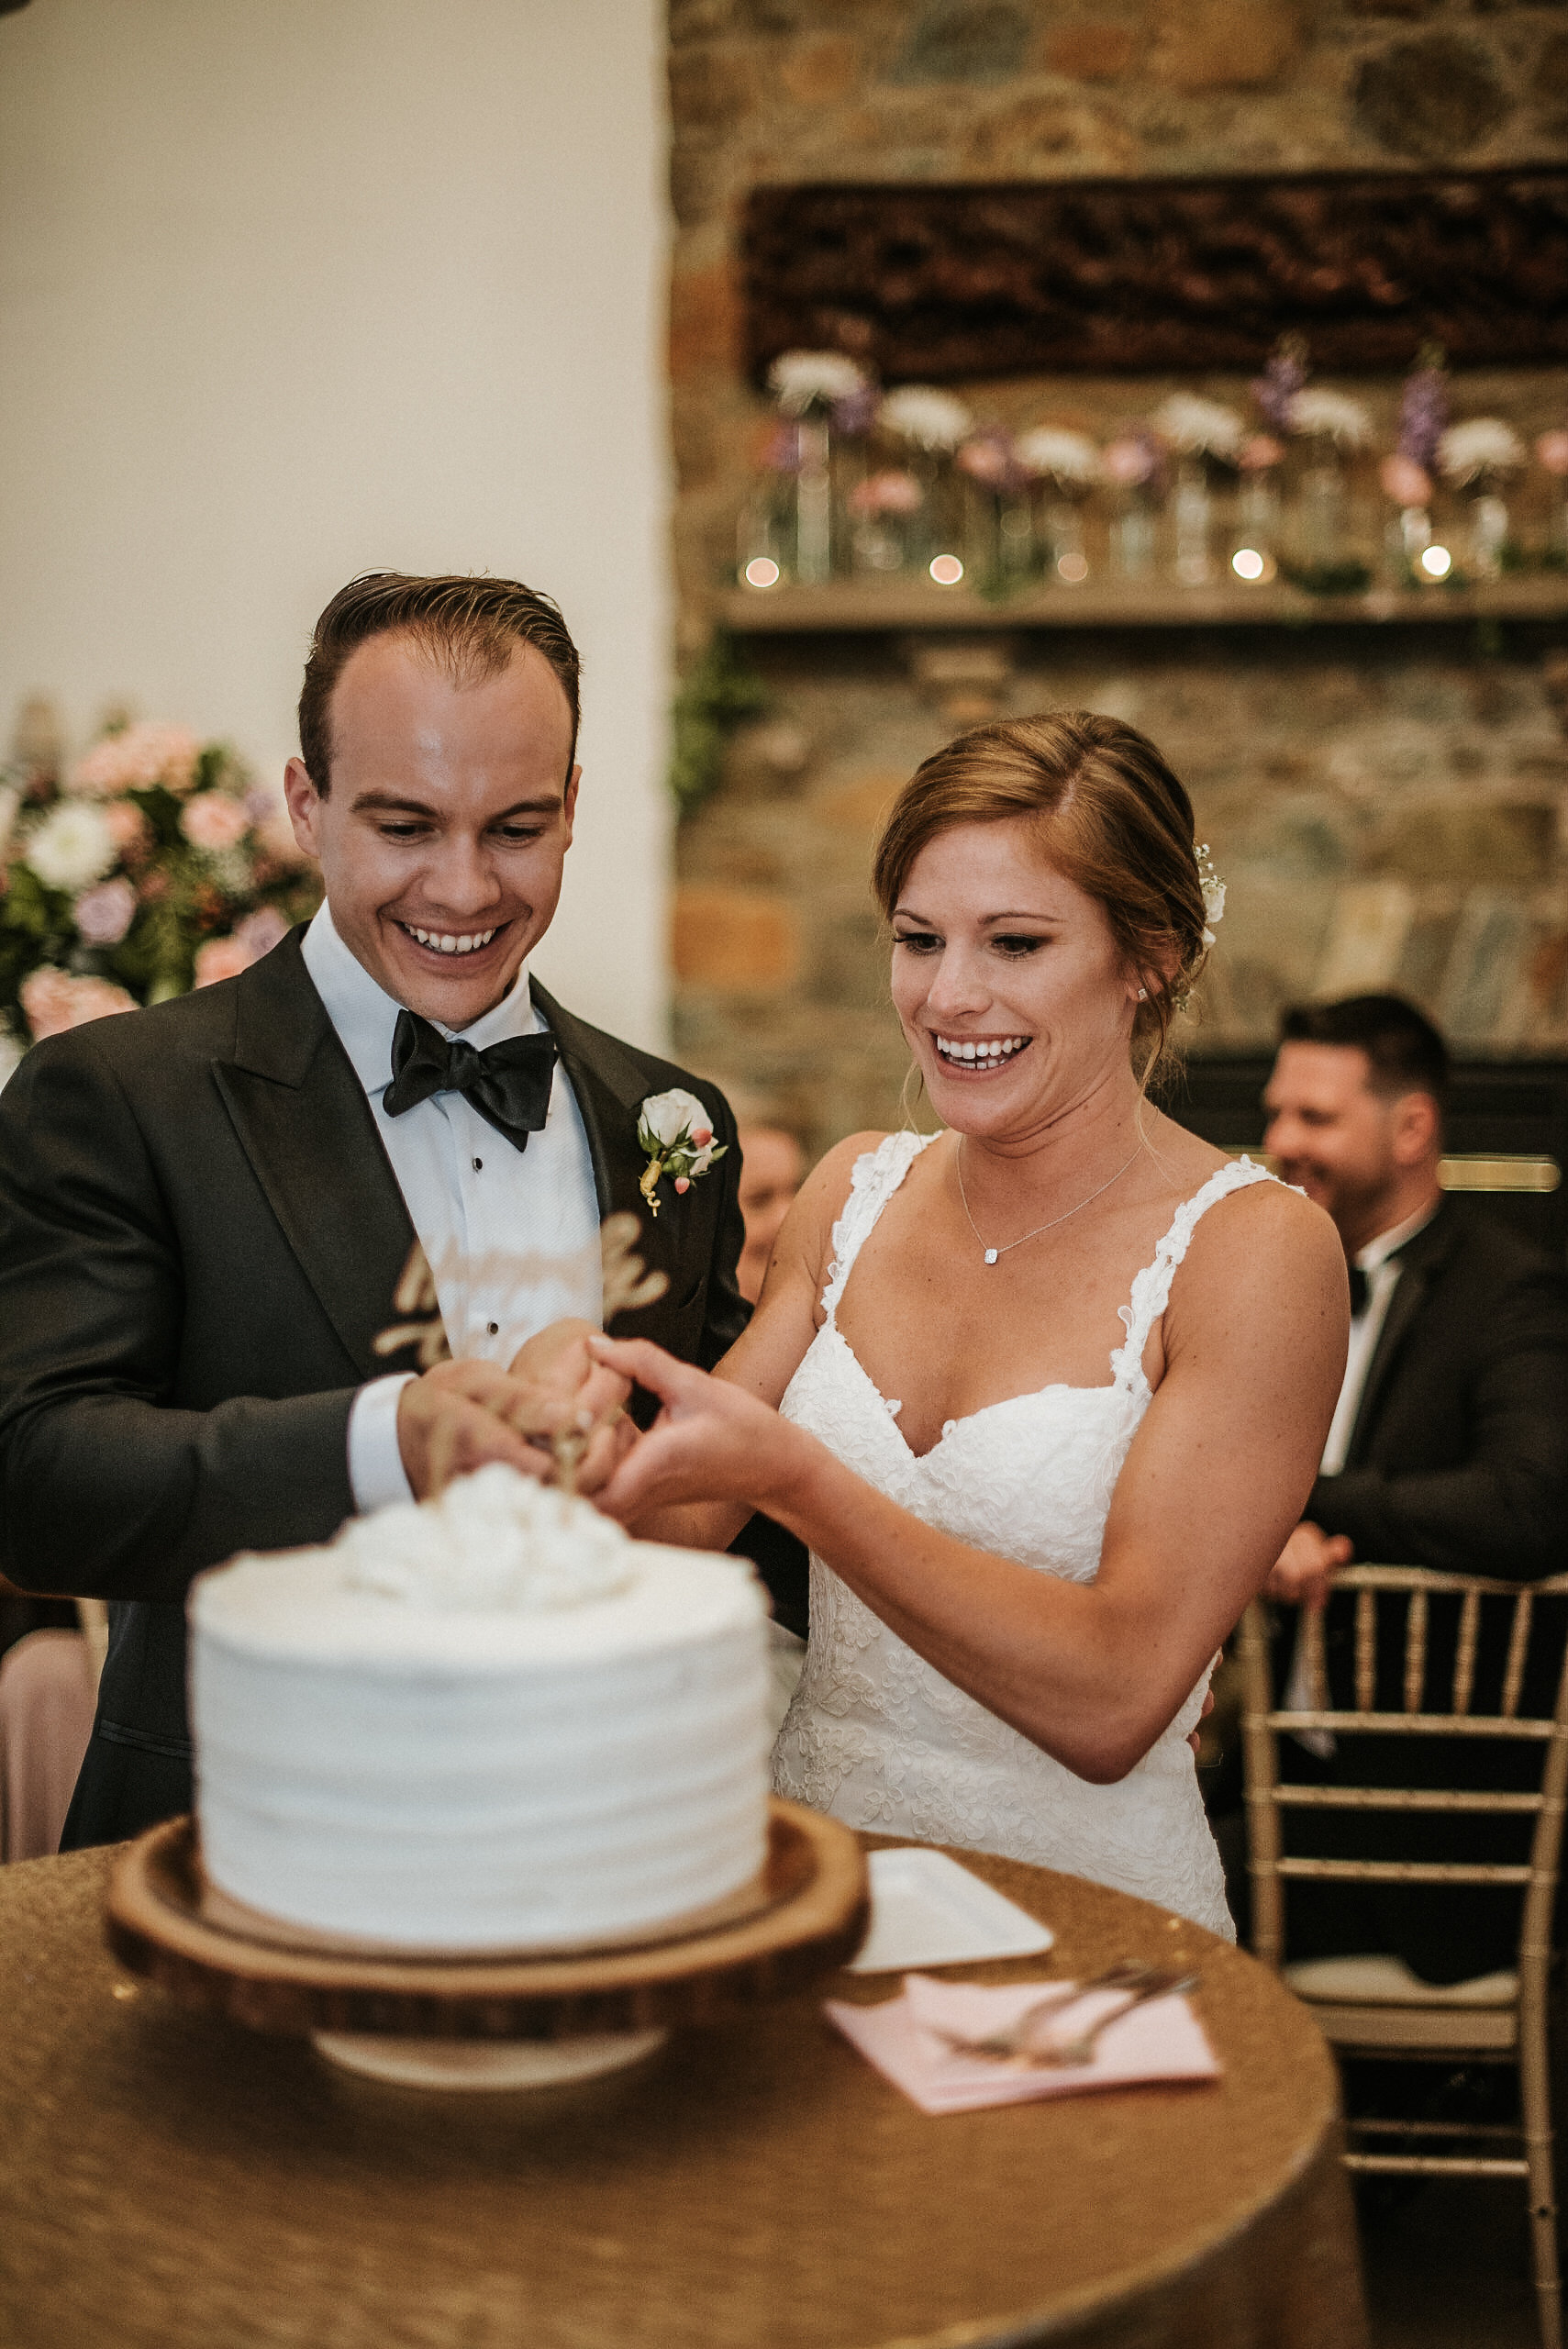 Goom and bride cutting cake